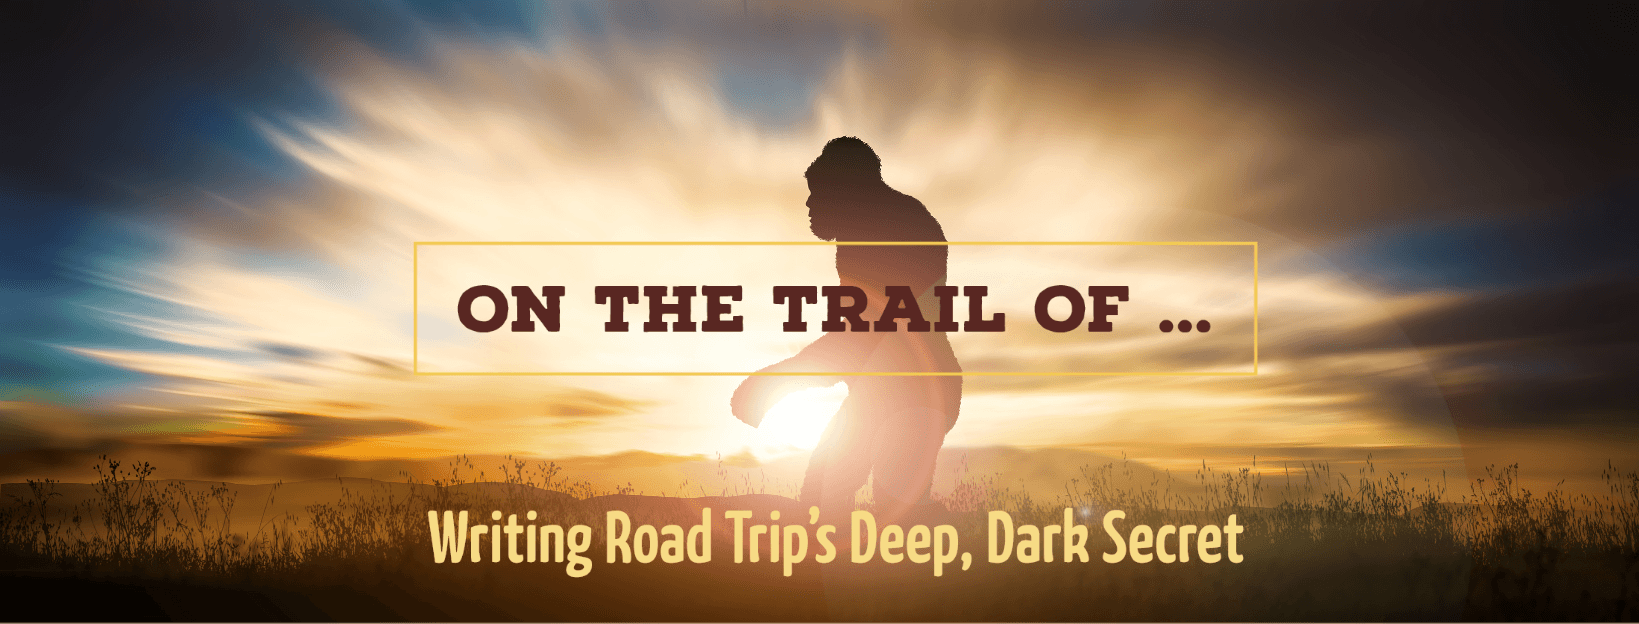 Writing Road Trip   On the Trail of Bigfoot